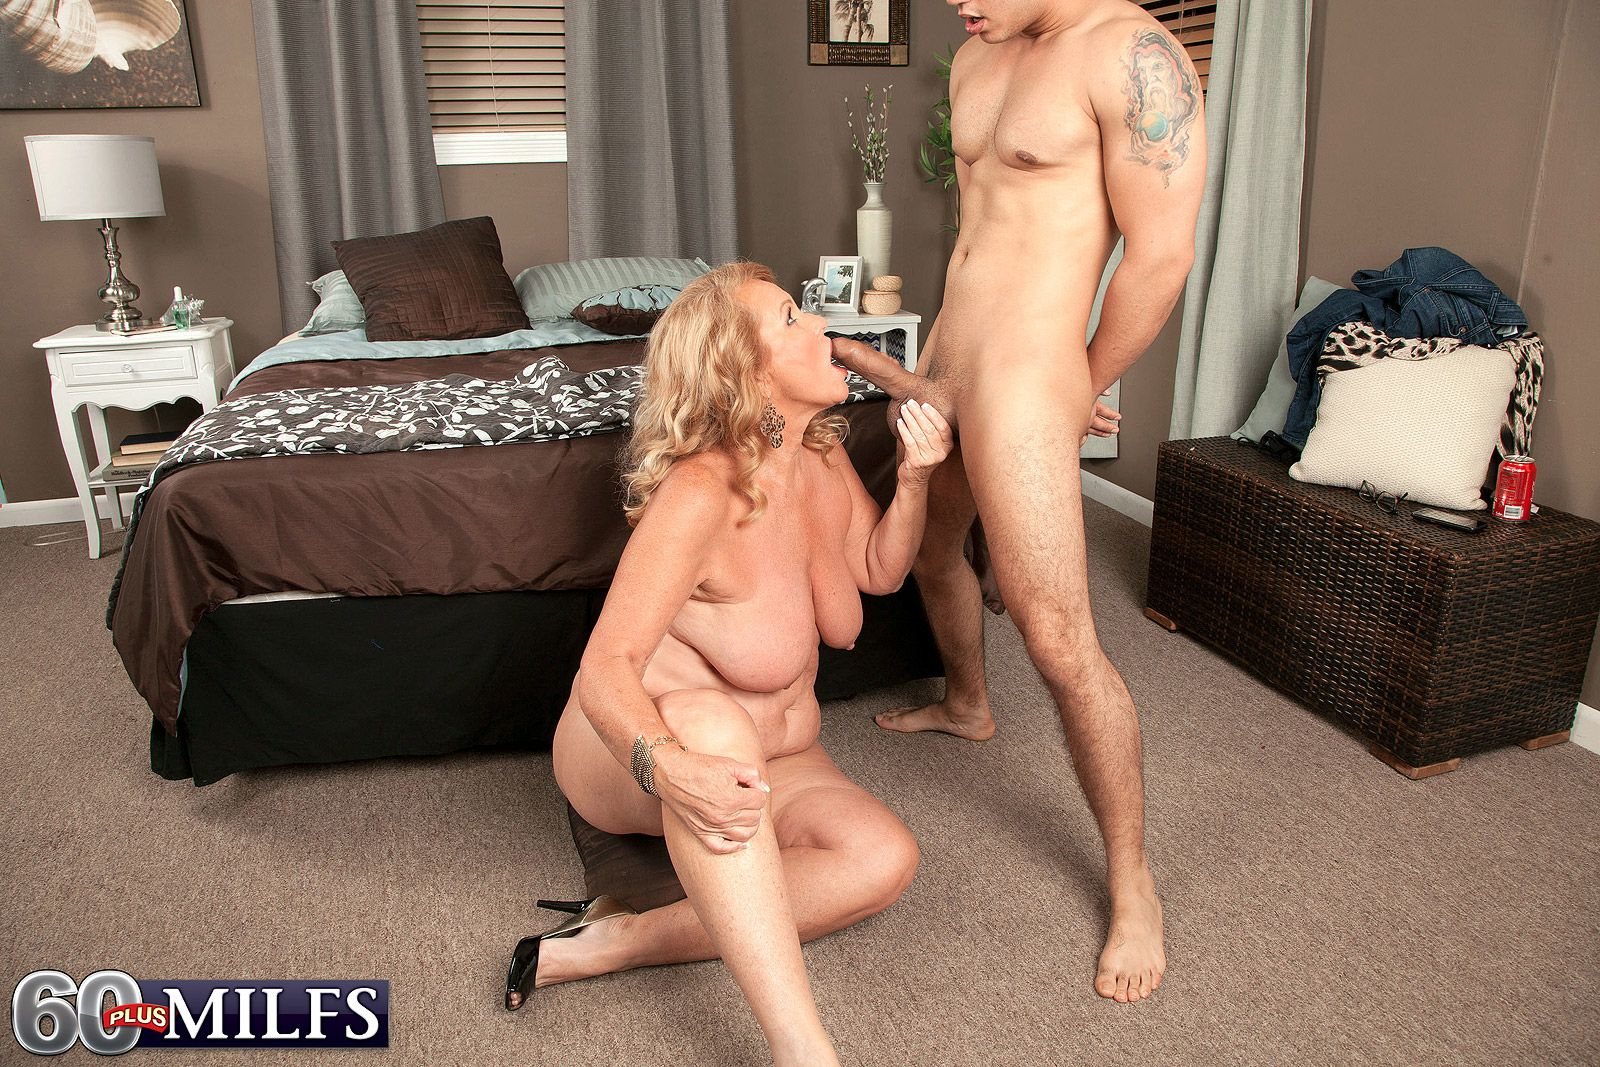 Blonde GILF seduces a young Latino lad while playing with her great tits